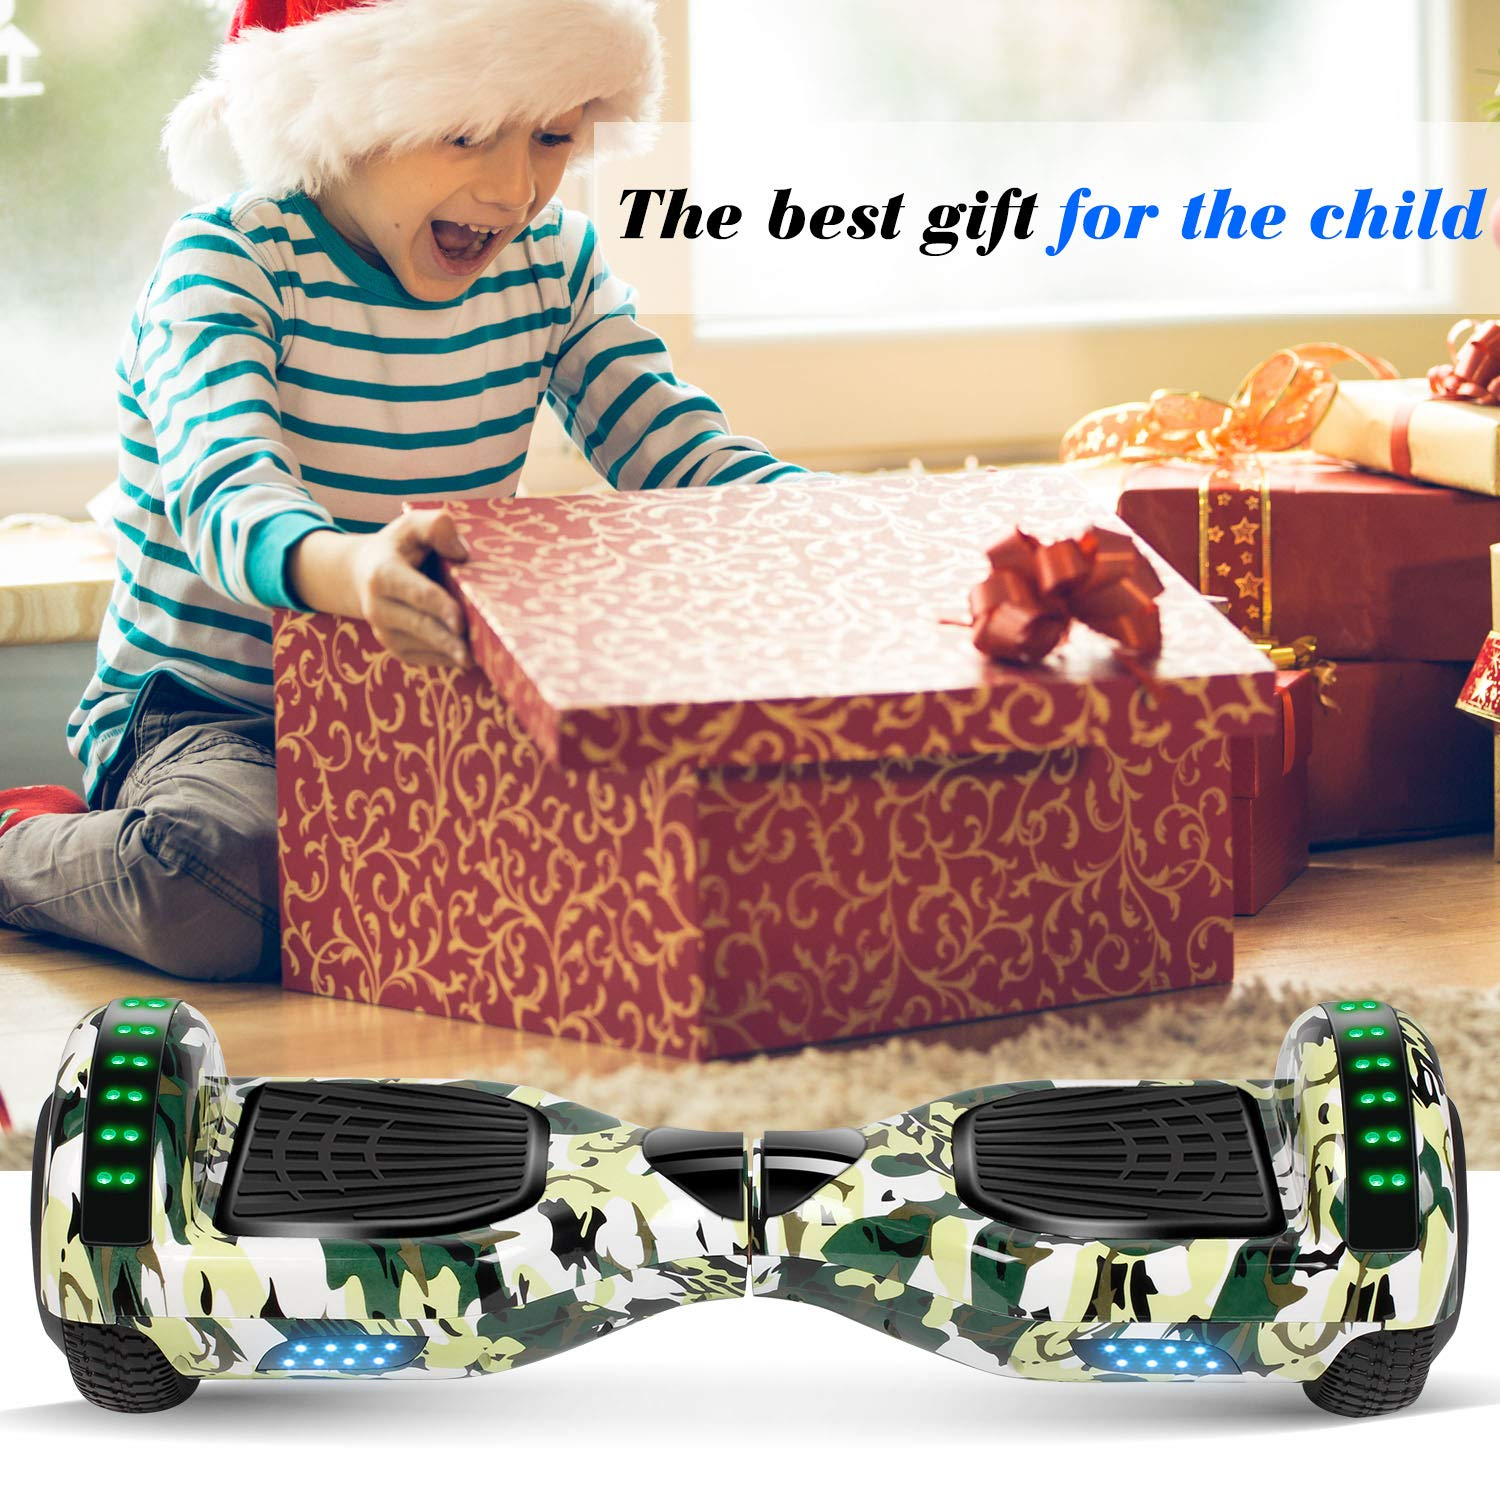 Hoverboard Self Balancing Scooter 6.5'' Two-Wheel Self Balancing Hoverboard with Bluetooth Speaker and LED Lights Electric Scooter for Adult Kids Gift UL 2272 Certified Fun Edition - Woodland Camo by SISIGAD (Image #6)